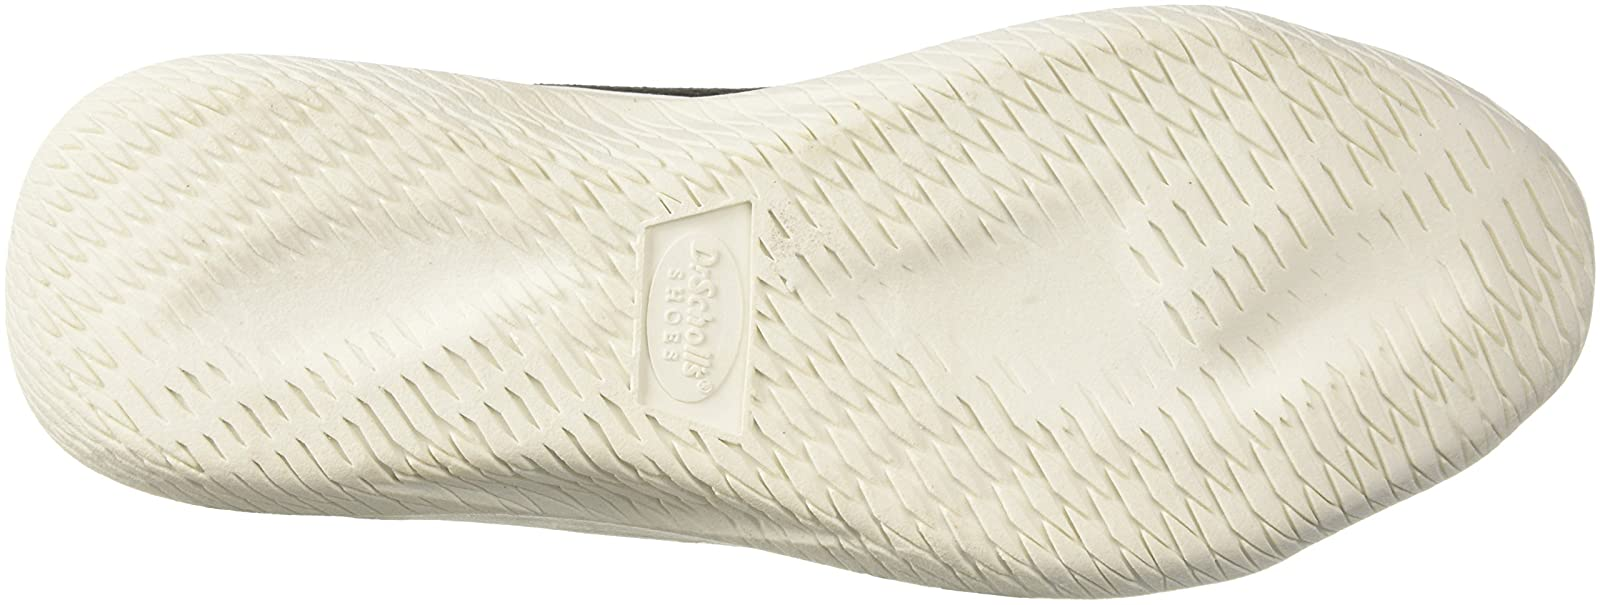 ff7ab52c4c209 Dr. Scholl's Shoes Women's Fresh One Moccasin F6143F1